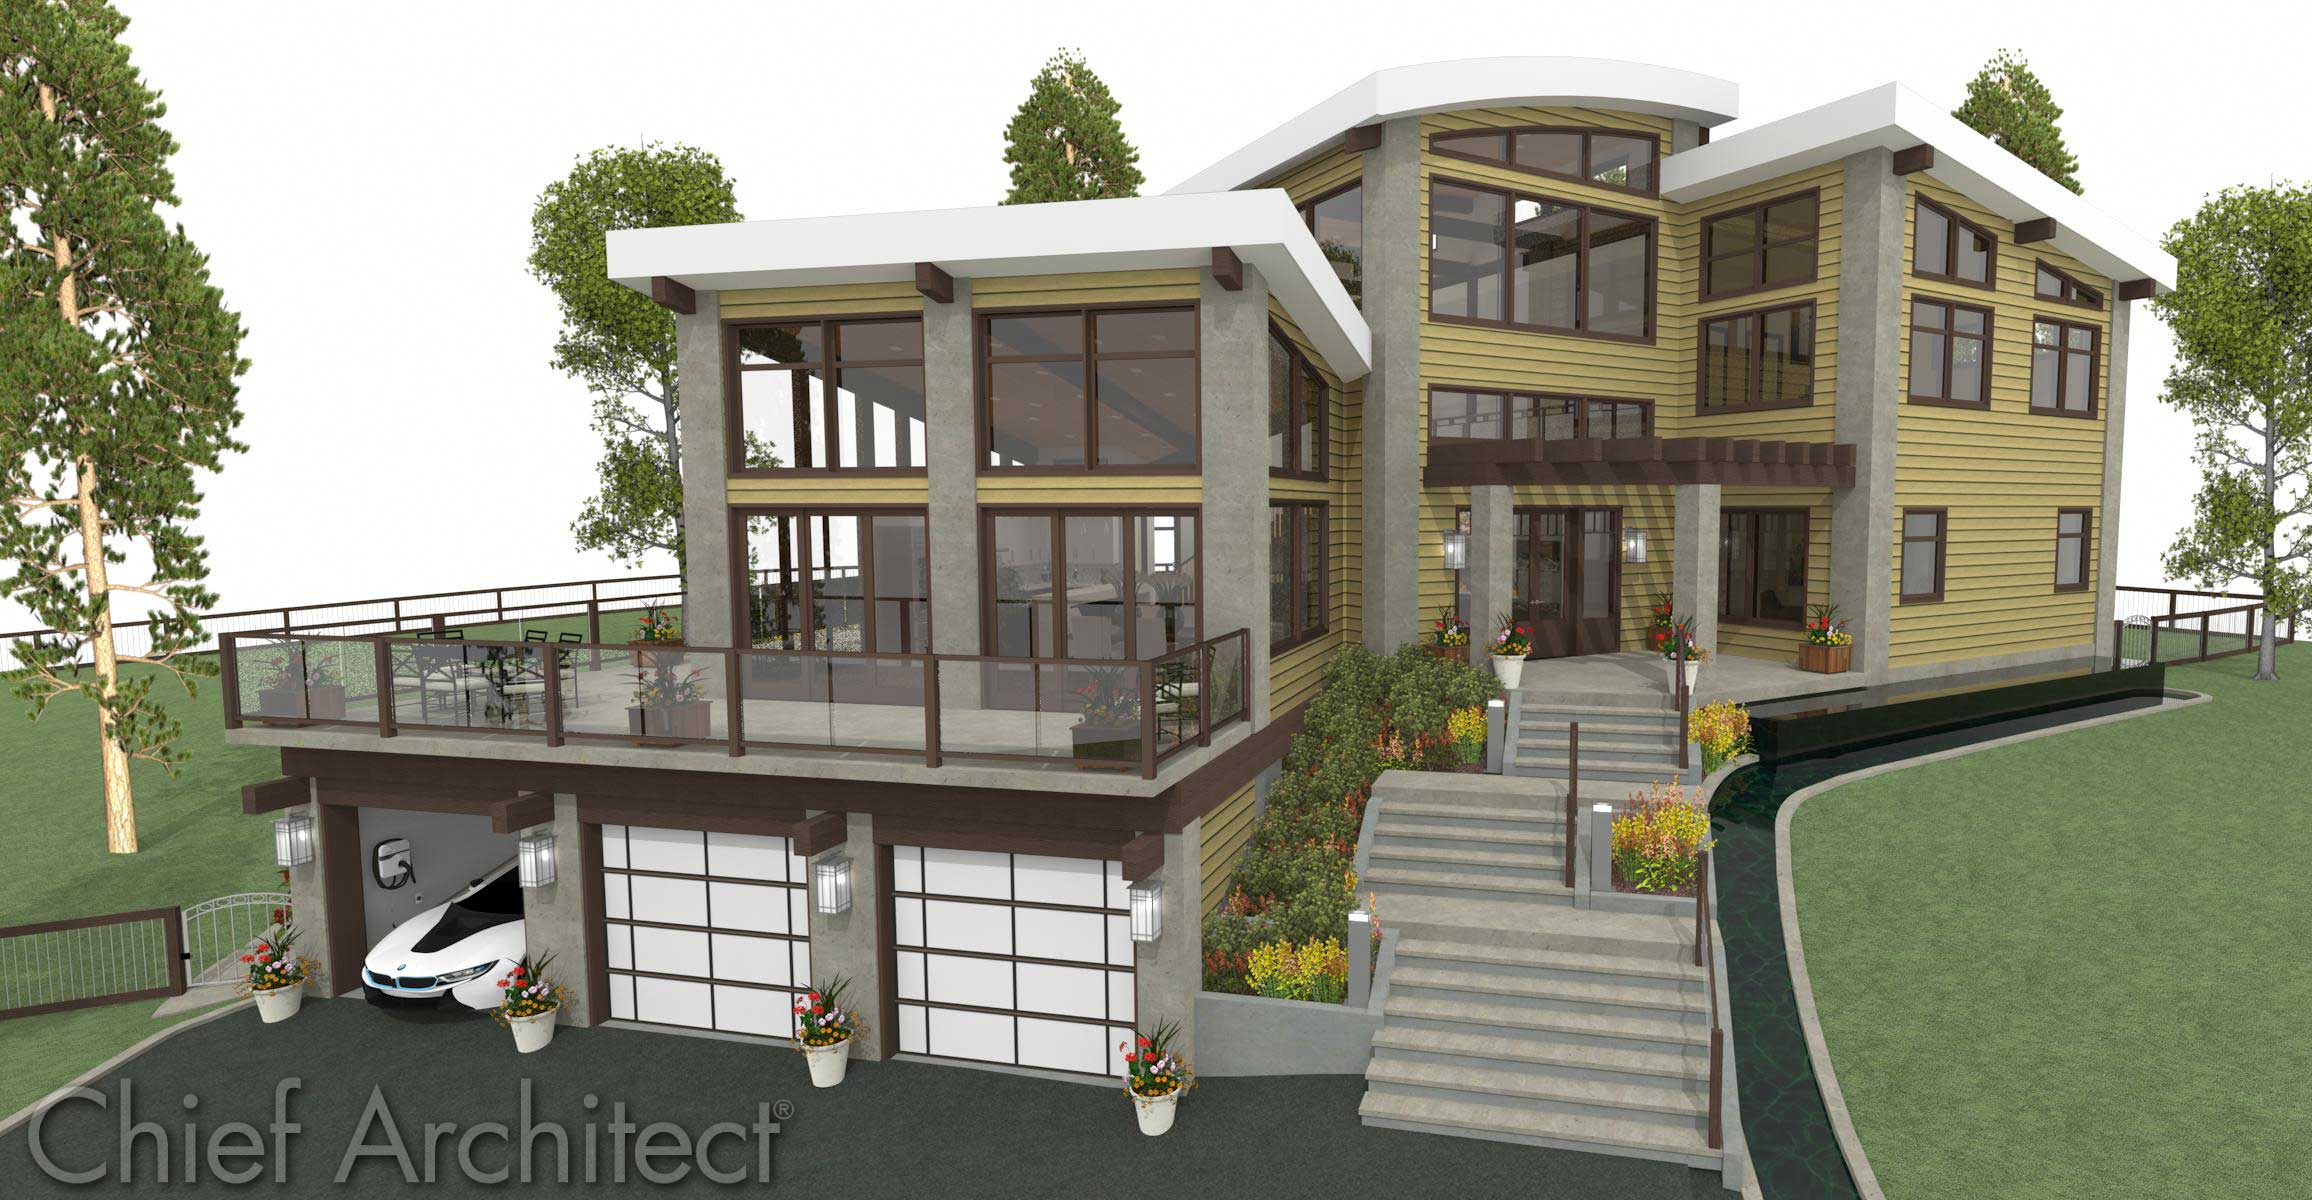 2312x1200 Chief Architect Home Design Software Samples Gallery With Houses